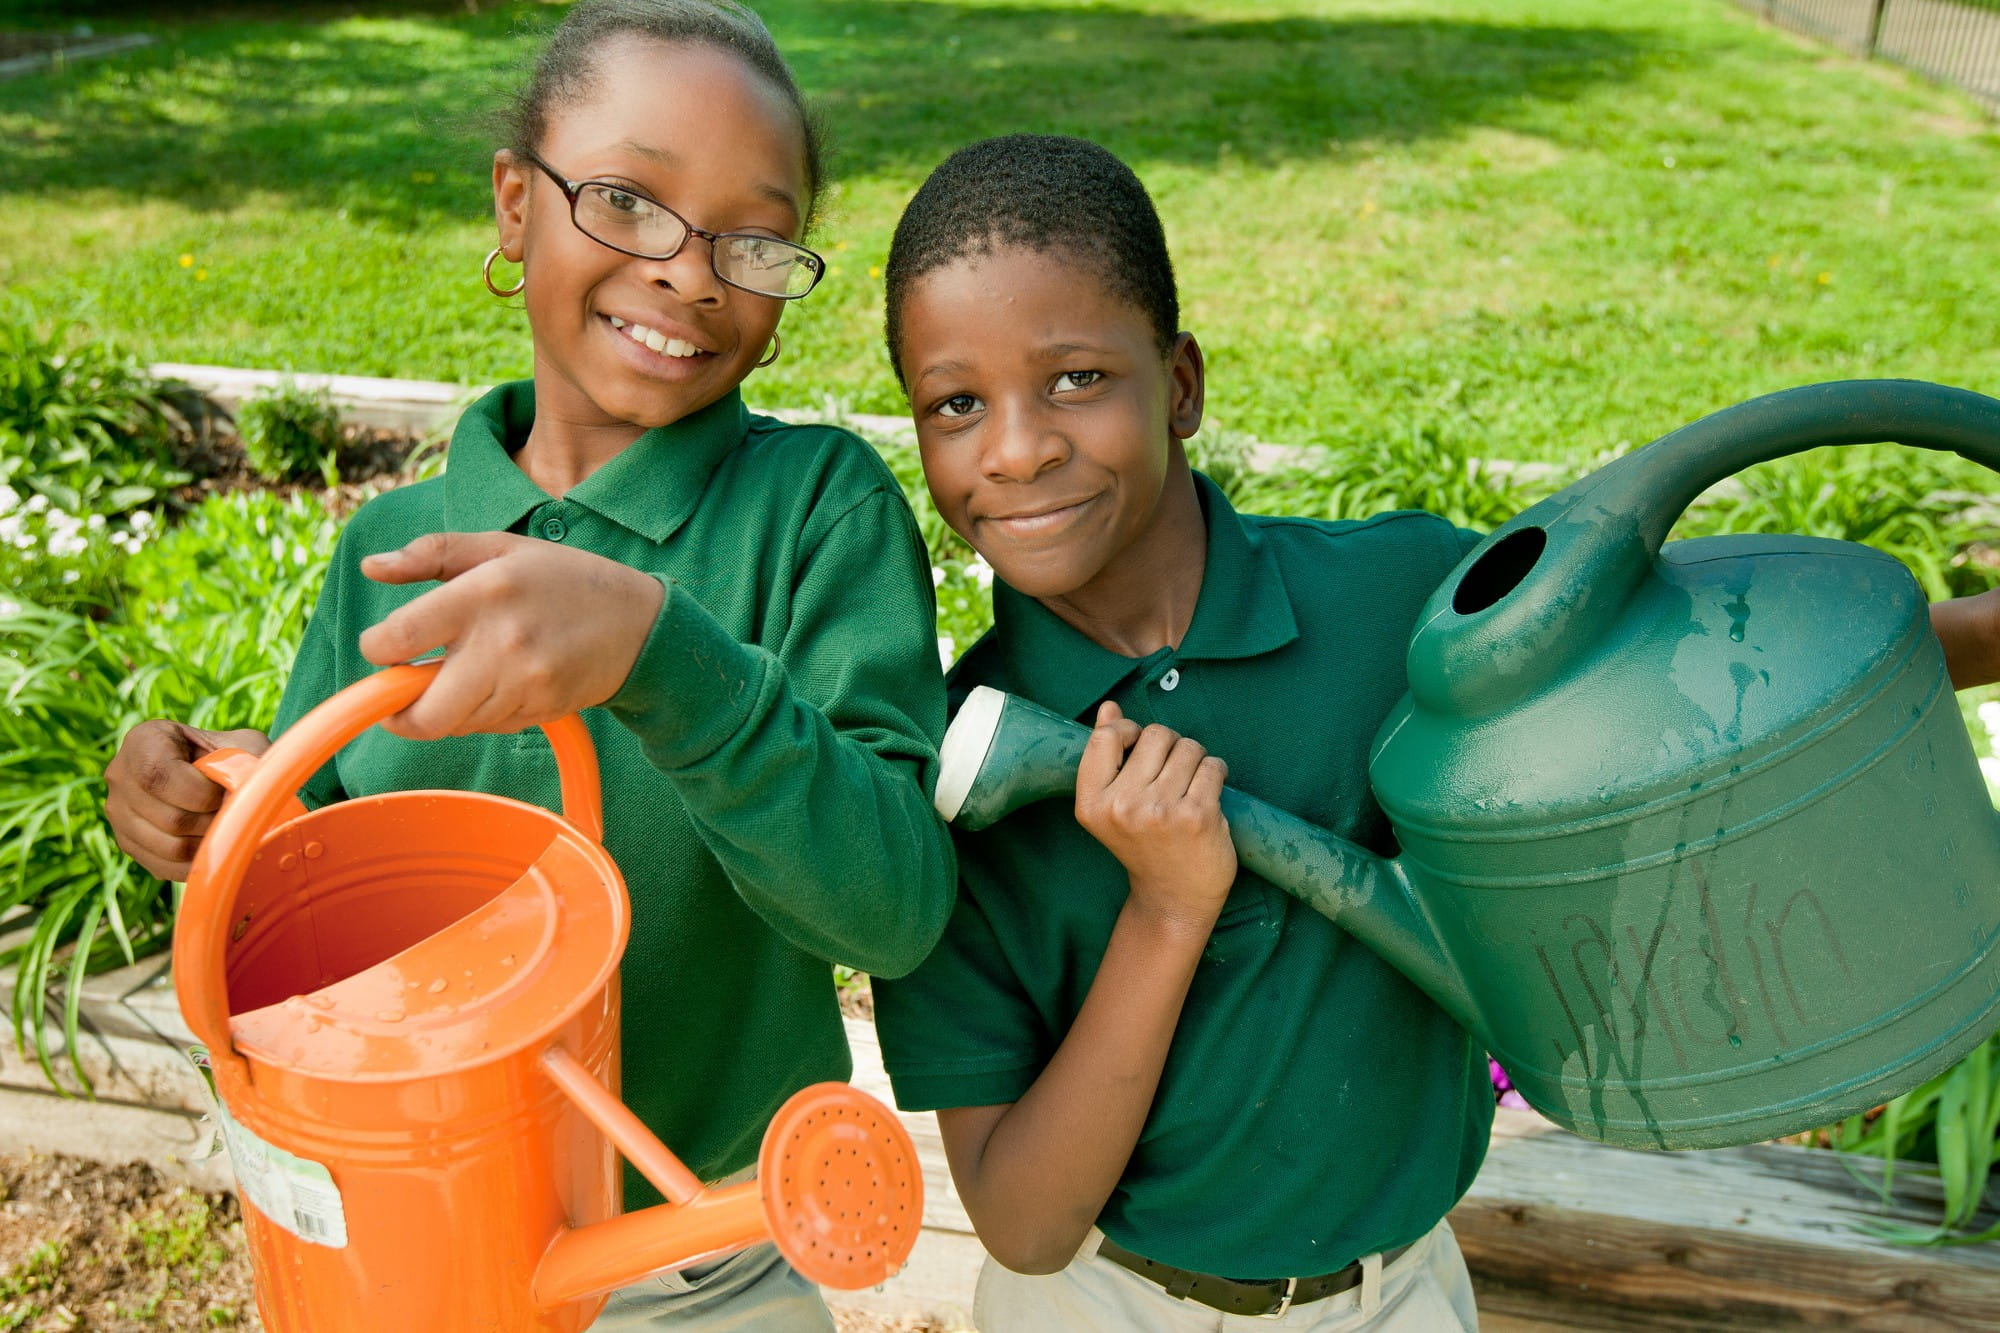 Two students holding watering cans as they participate in school garden program